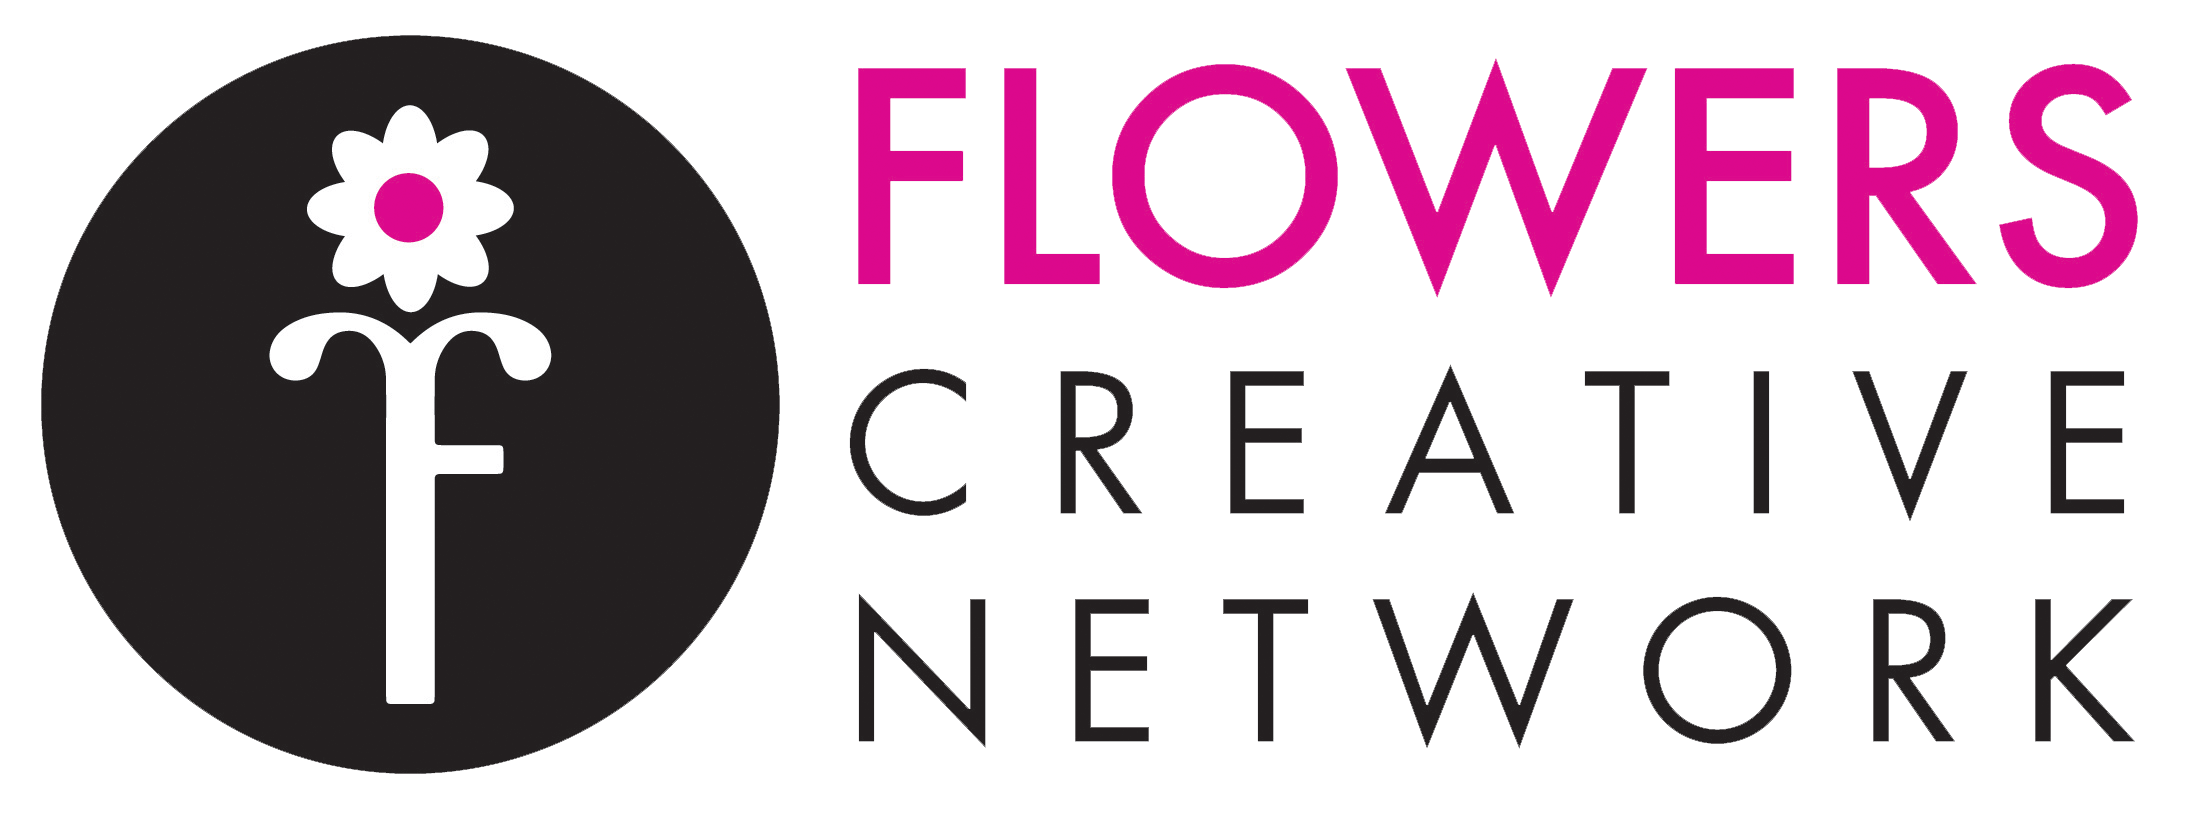 Flowers Creative Network by Atlantis Company